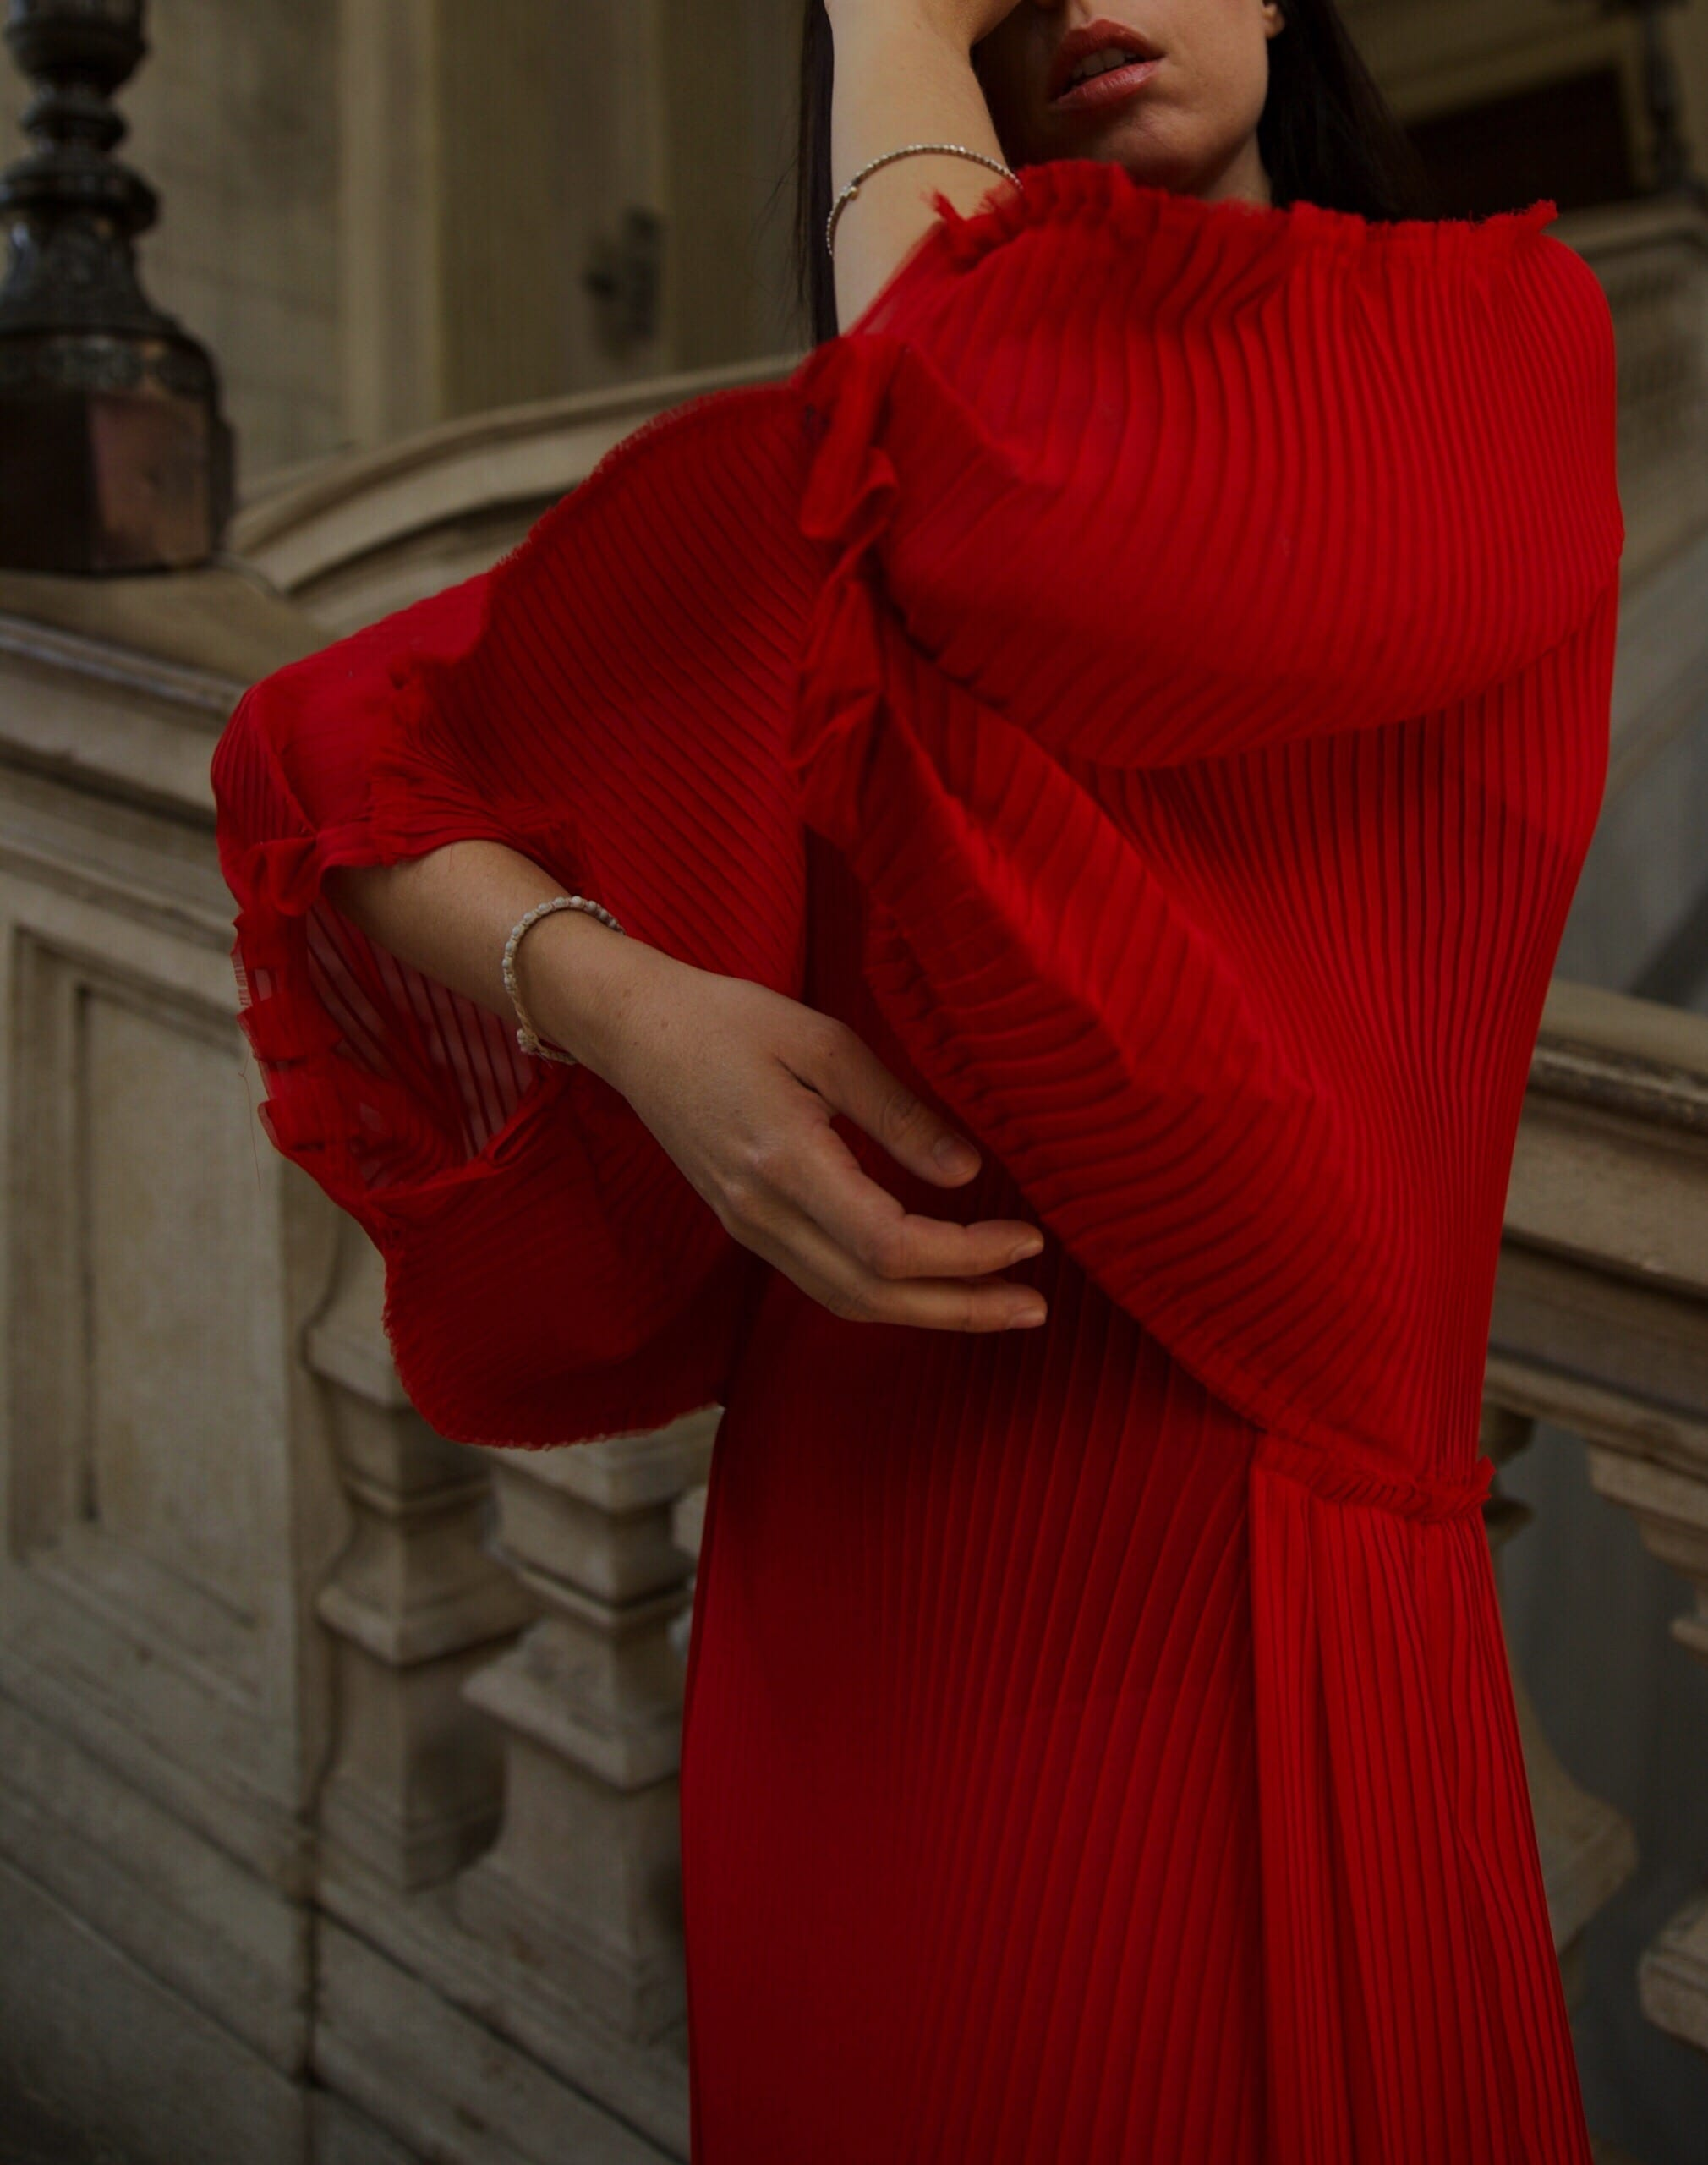 come abbinare abito rosso, elisa bellino, fashion blogger italiane 2019, fashion blogger milano, fashion blogger outfit 2019, slip dress outfit, magali pascal dress, streetstyle milano 2019, come vestirsi aperitivo milano 2019, fashion influencer italiane 2019, chi seguire su instagram 2019, loredana roccasalva